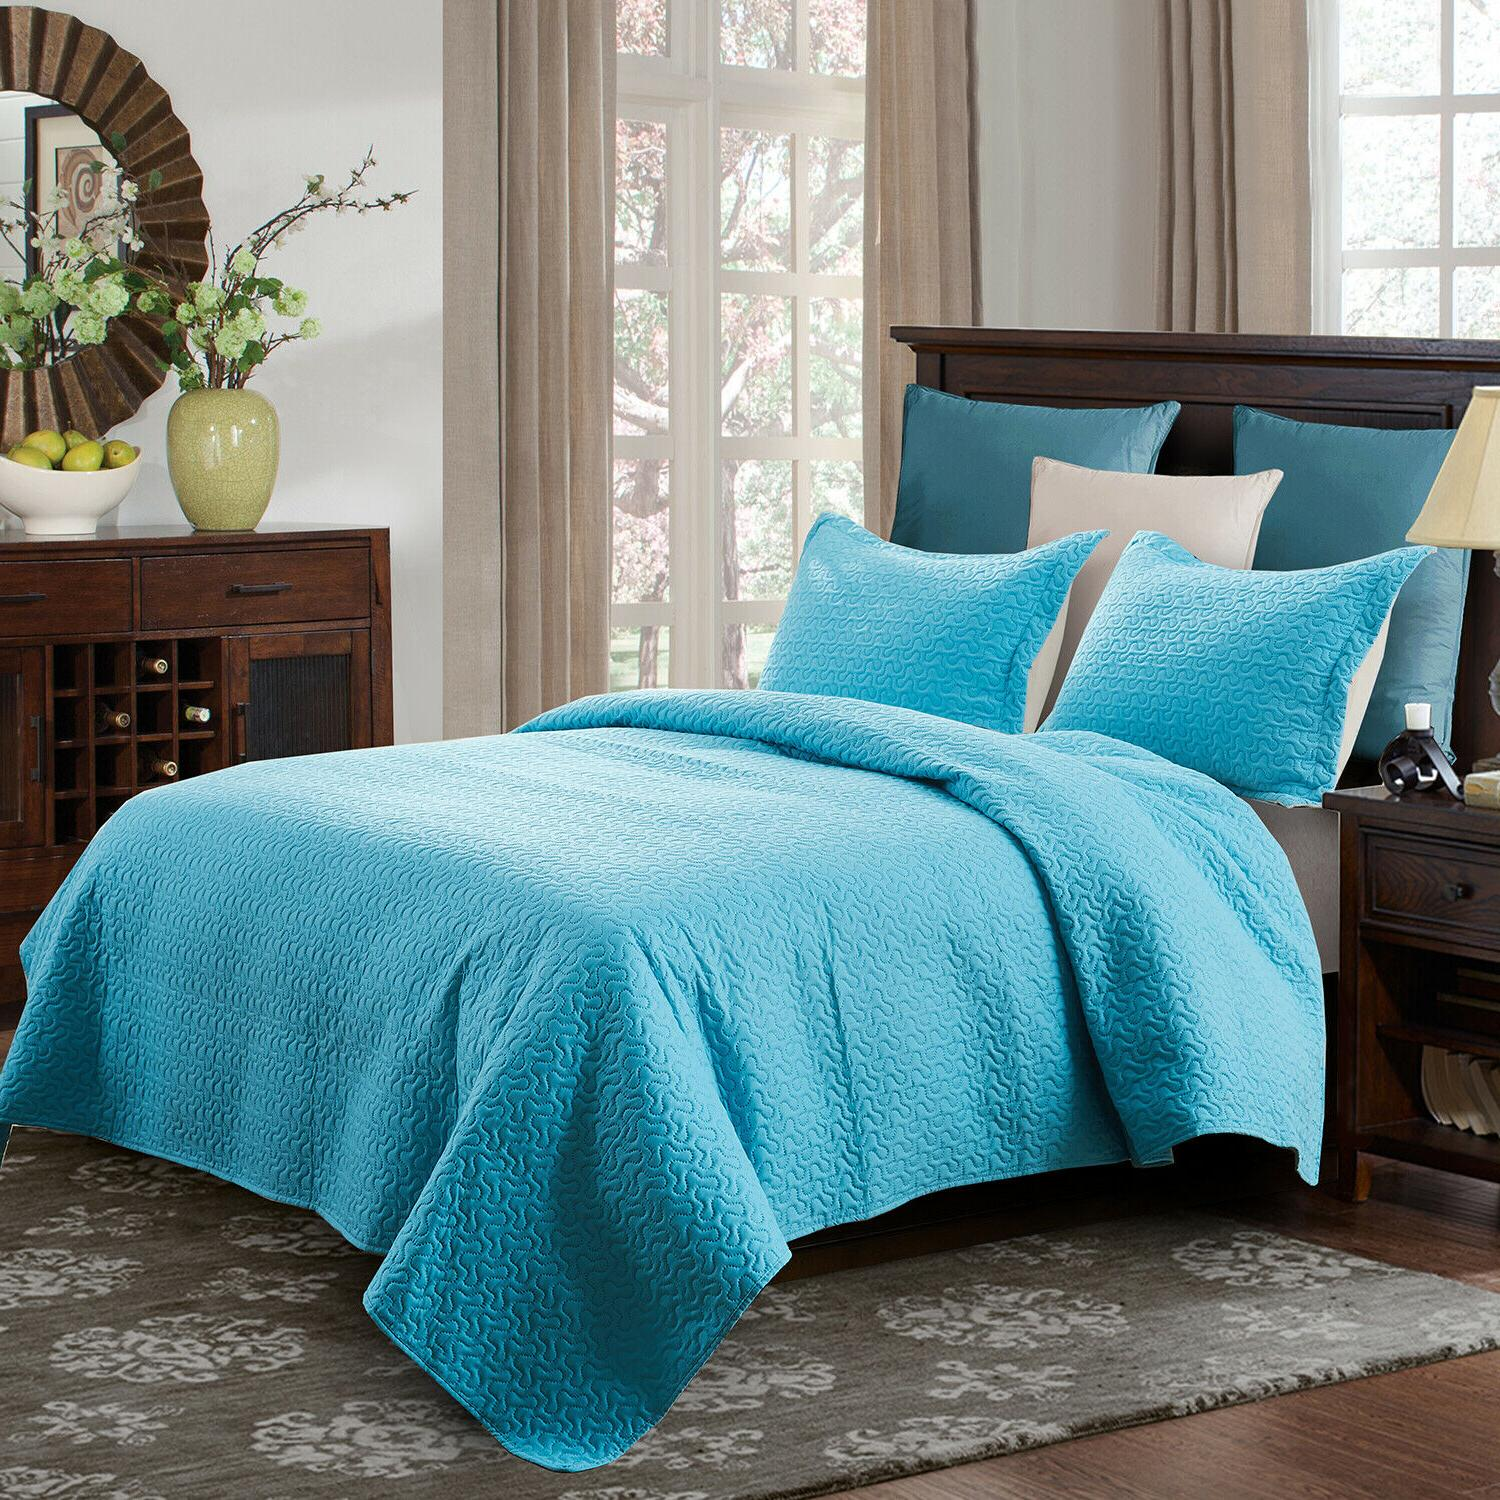 3-Piece Coverlet Quilt Set Queen/King Size